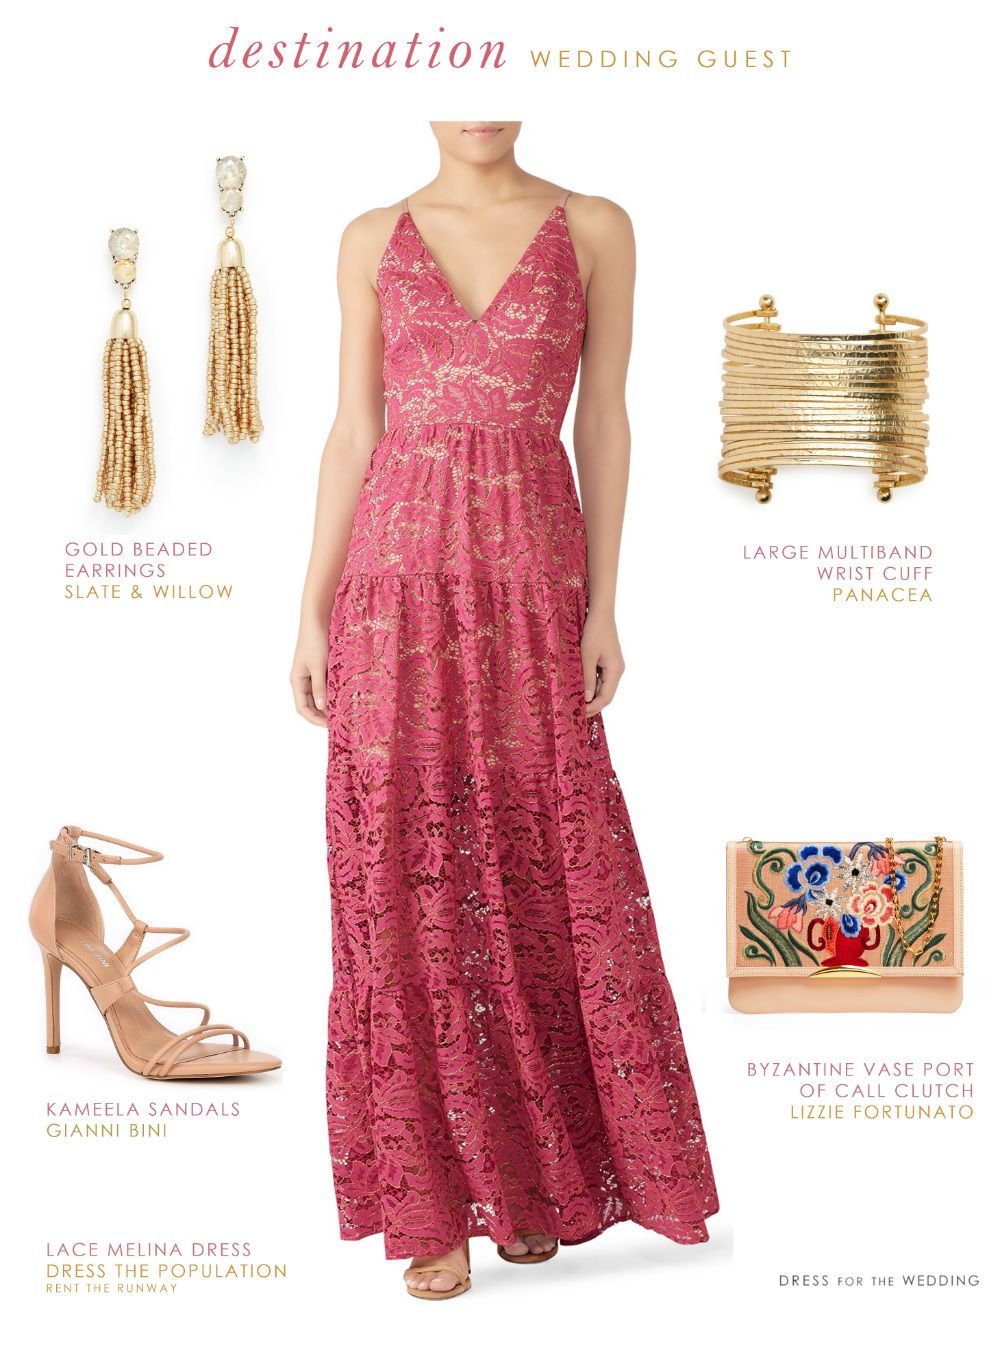 What To Wear To A Destination Wedding As A Guest Wedding Guest Dress Wedding Outfit Wedding Guest Outfit [ 1346 x 1000 Pixel ]